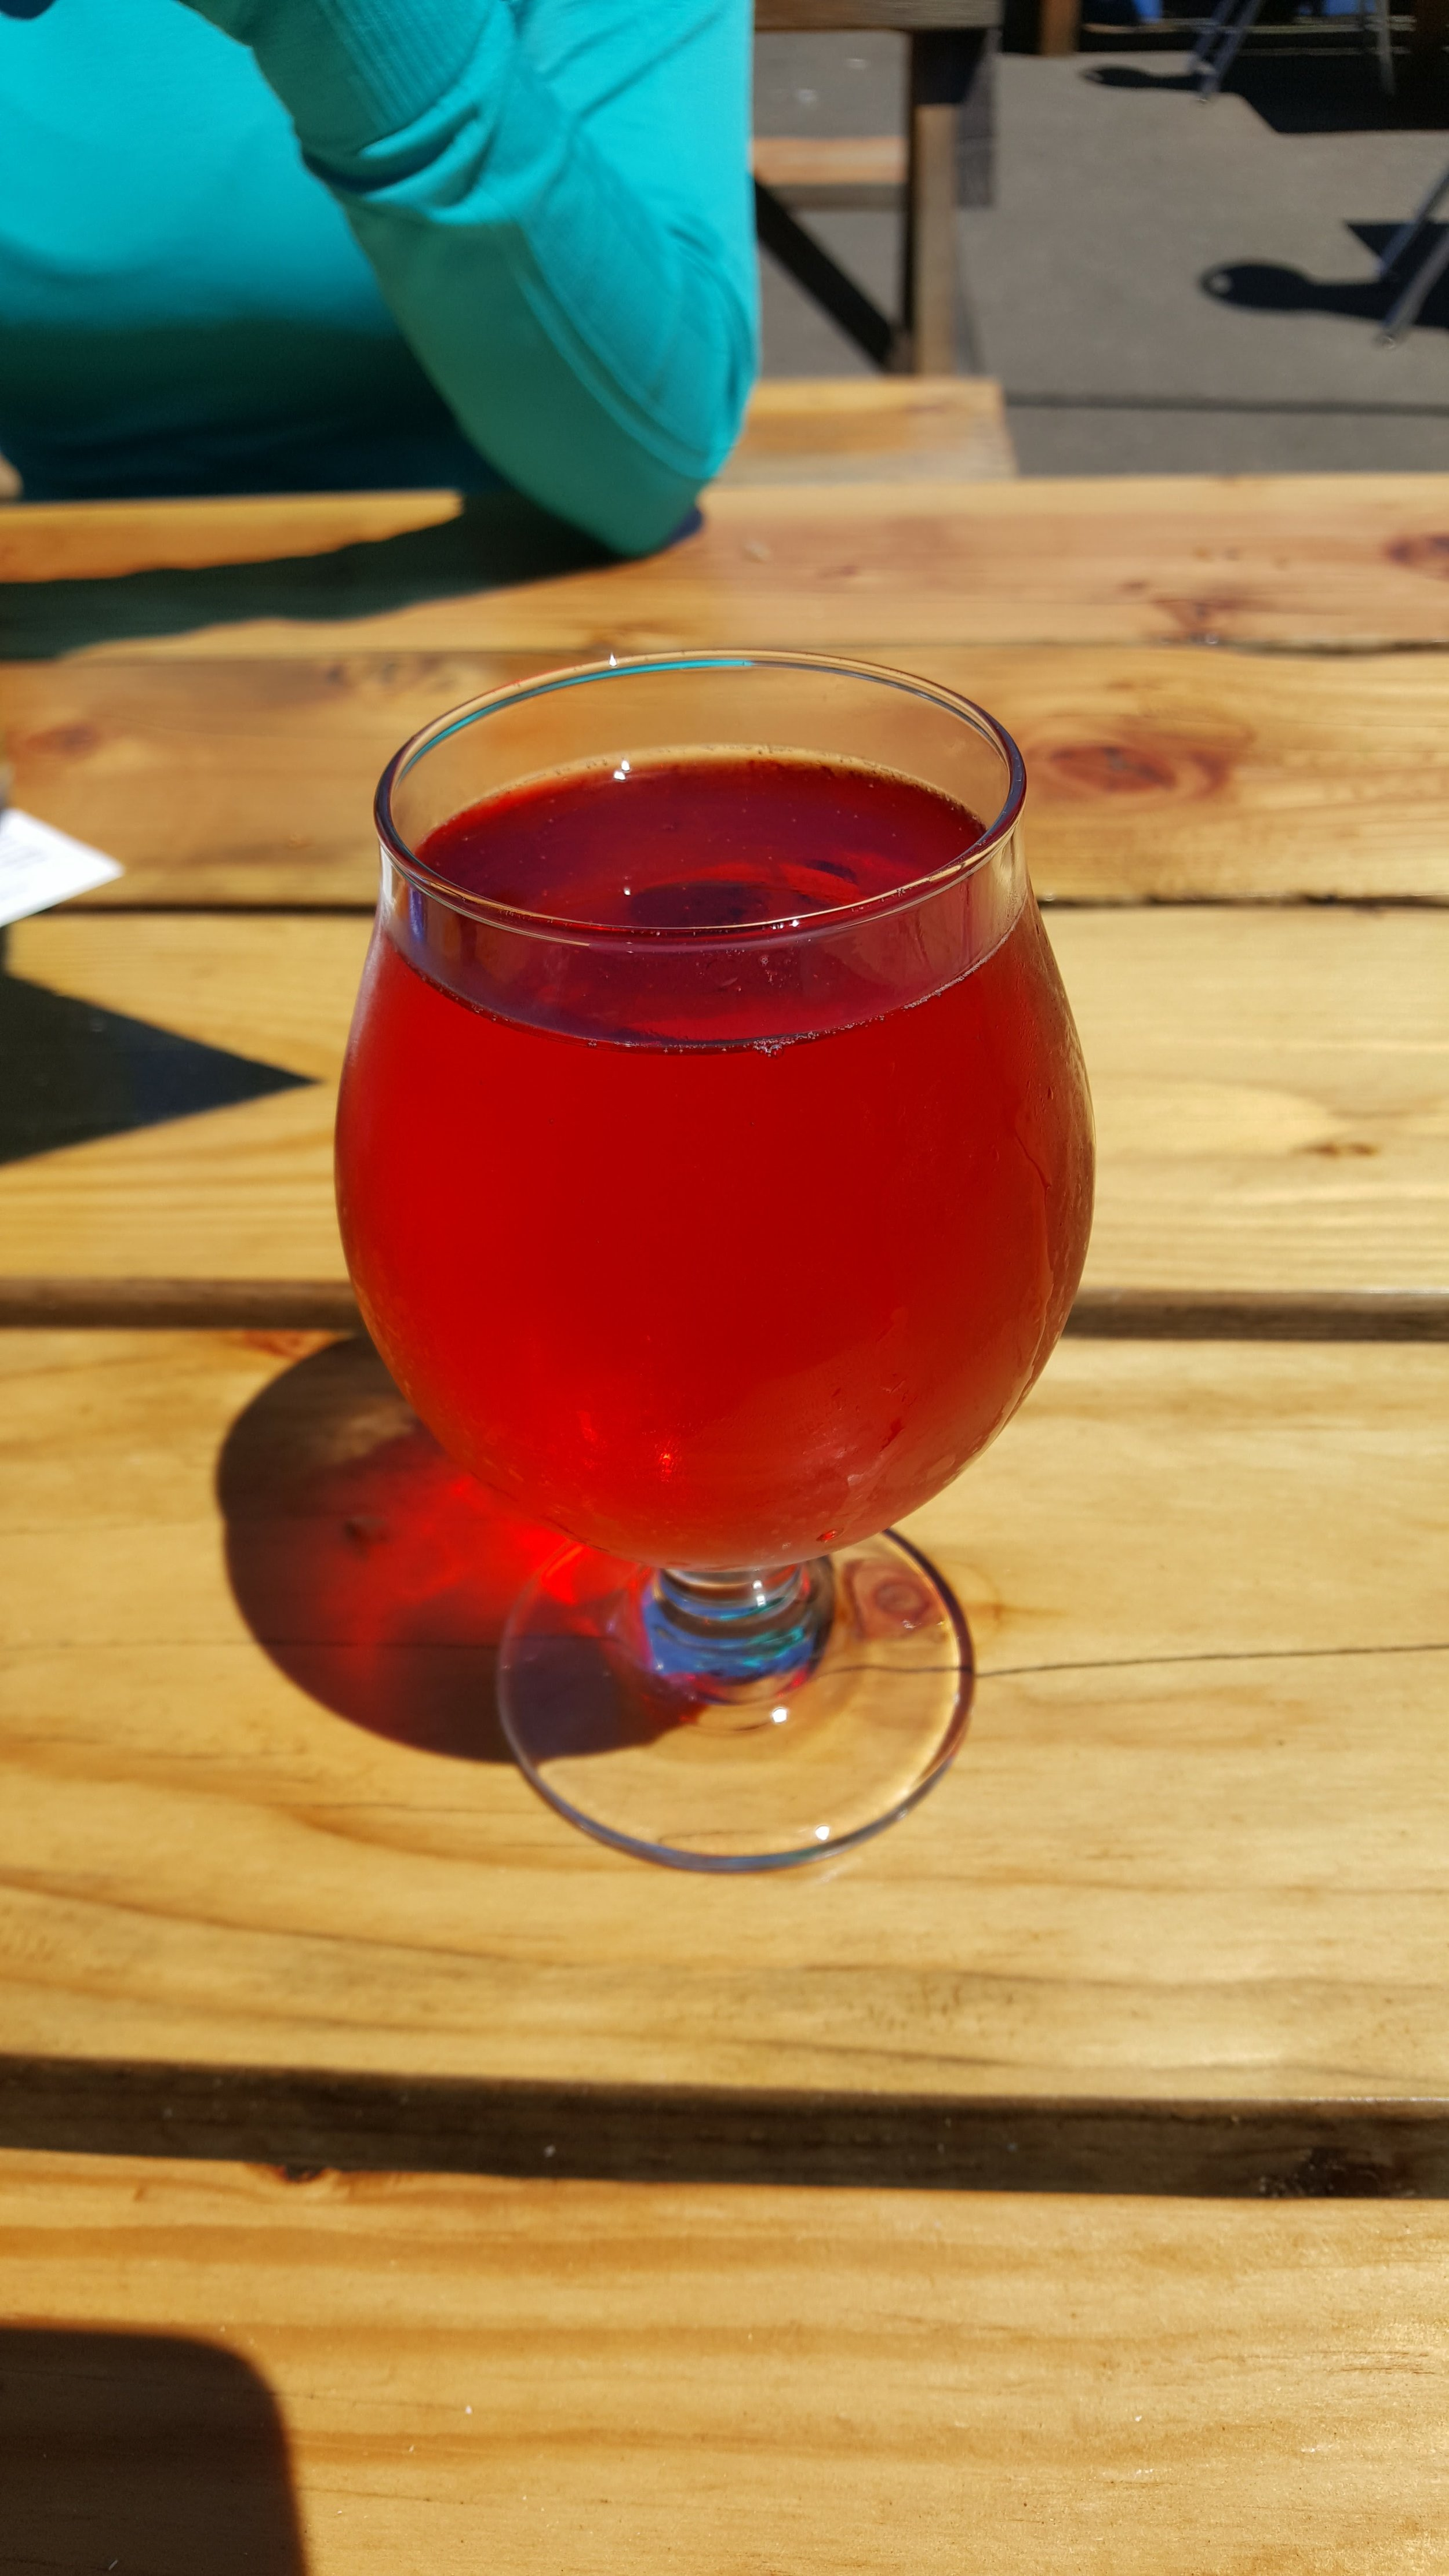 Marionberry Cider by Swift Cidery based in Portland, OR. Sooo good.